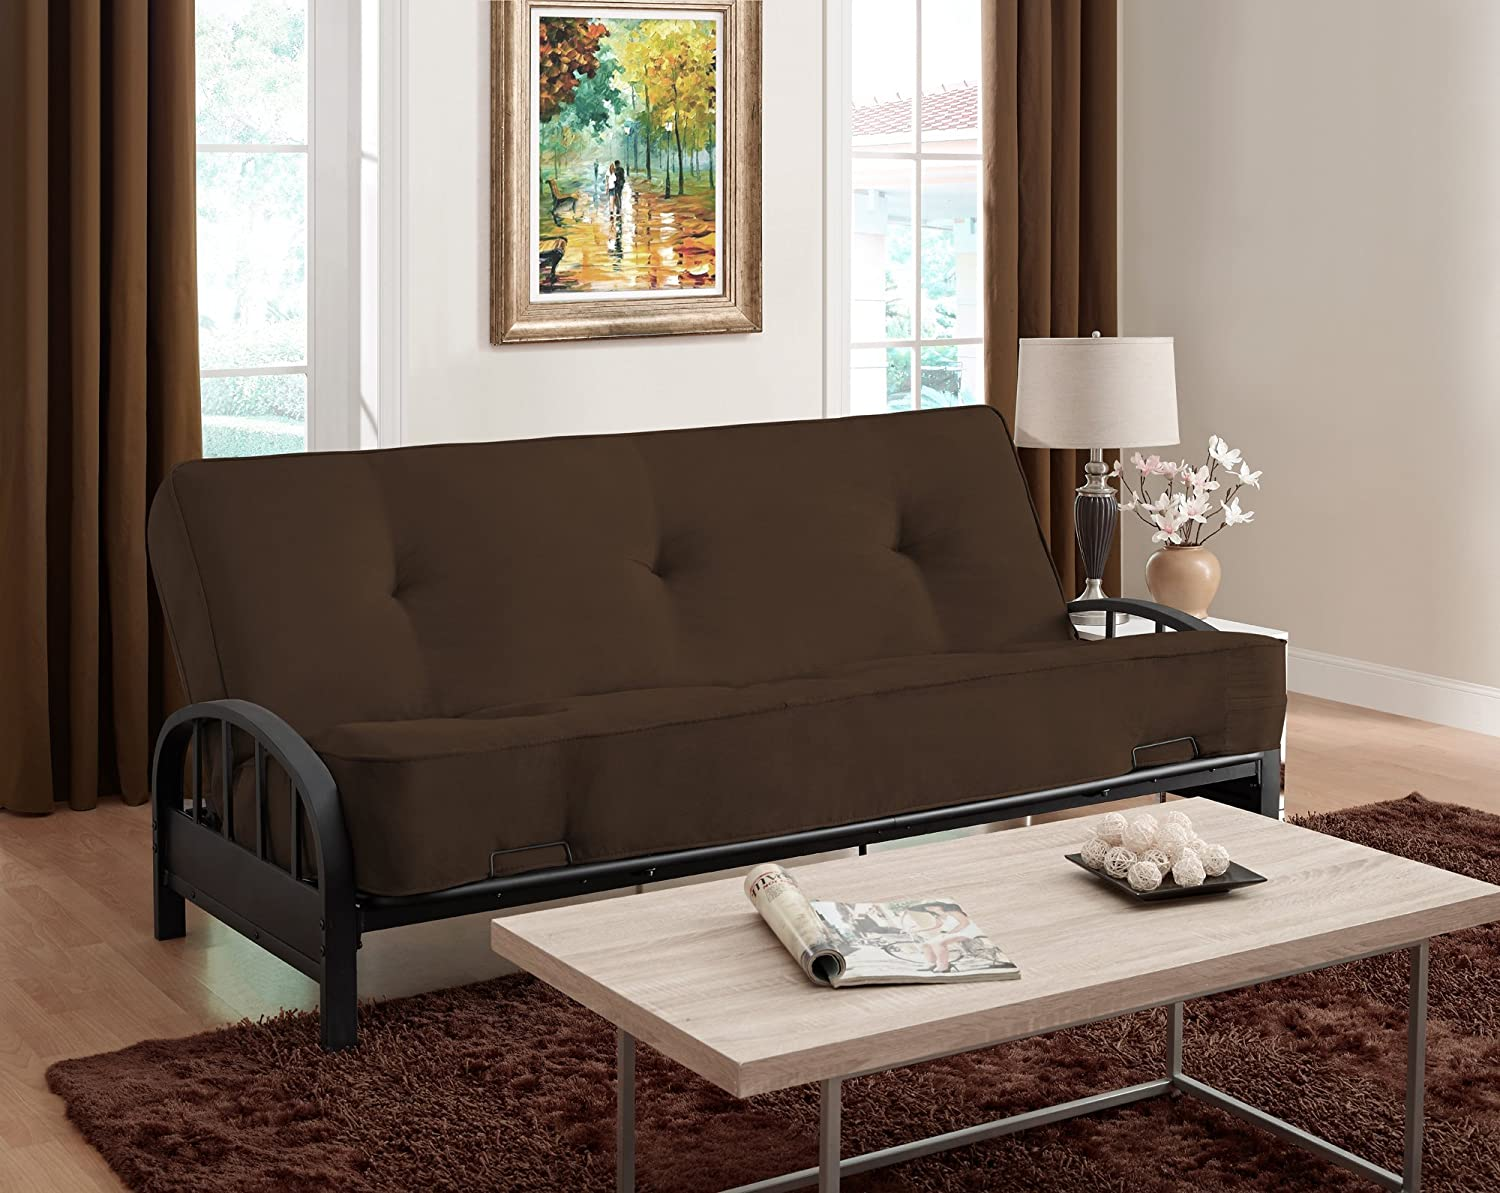 home tire assembly furnishings black frame dorel futons canadian vermont instructions metal futon